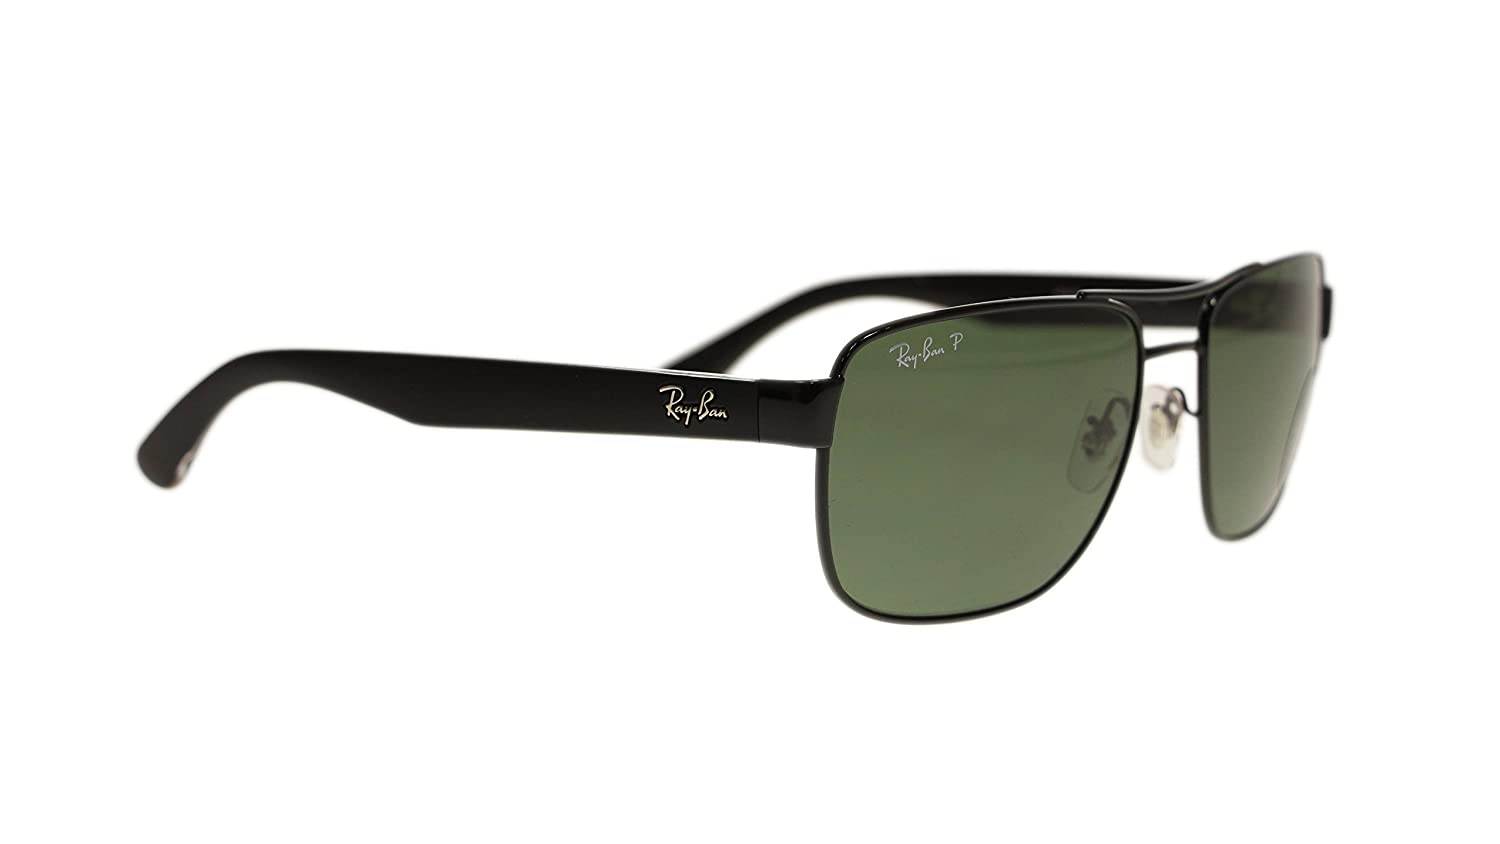 4b1f7314c4 Amazon.com  Ray Ban Mens Sunglasses RB3530 002 9A Black Green Lens 58mm  Authentic  Clothing